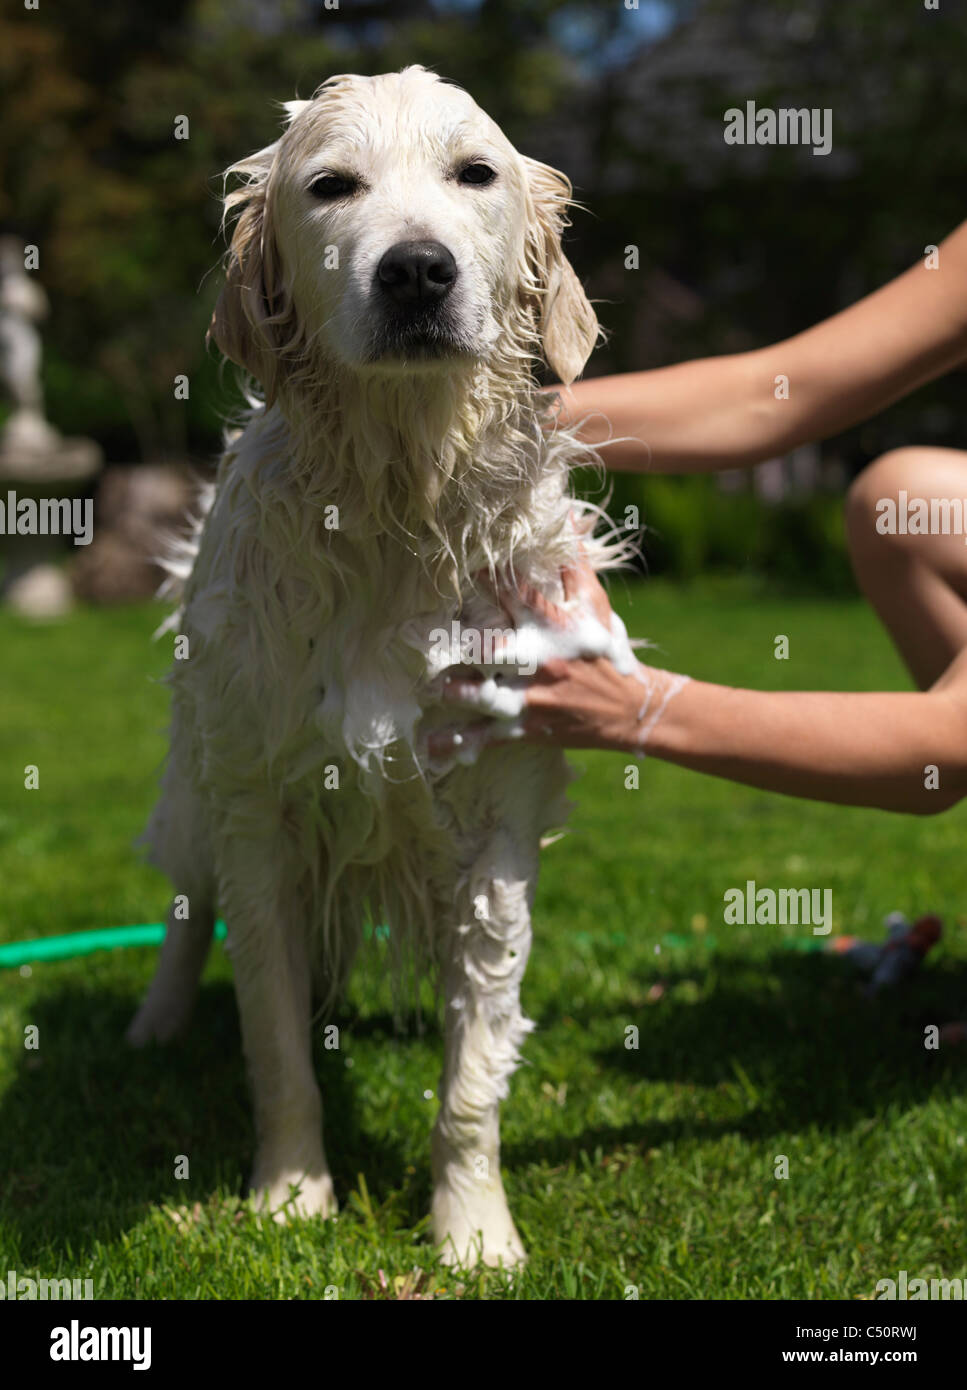 Young woman giving her Golden Retriever a bath in a back yard - Stock Image